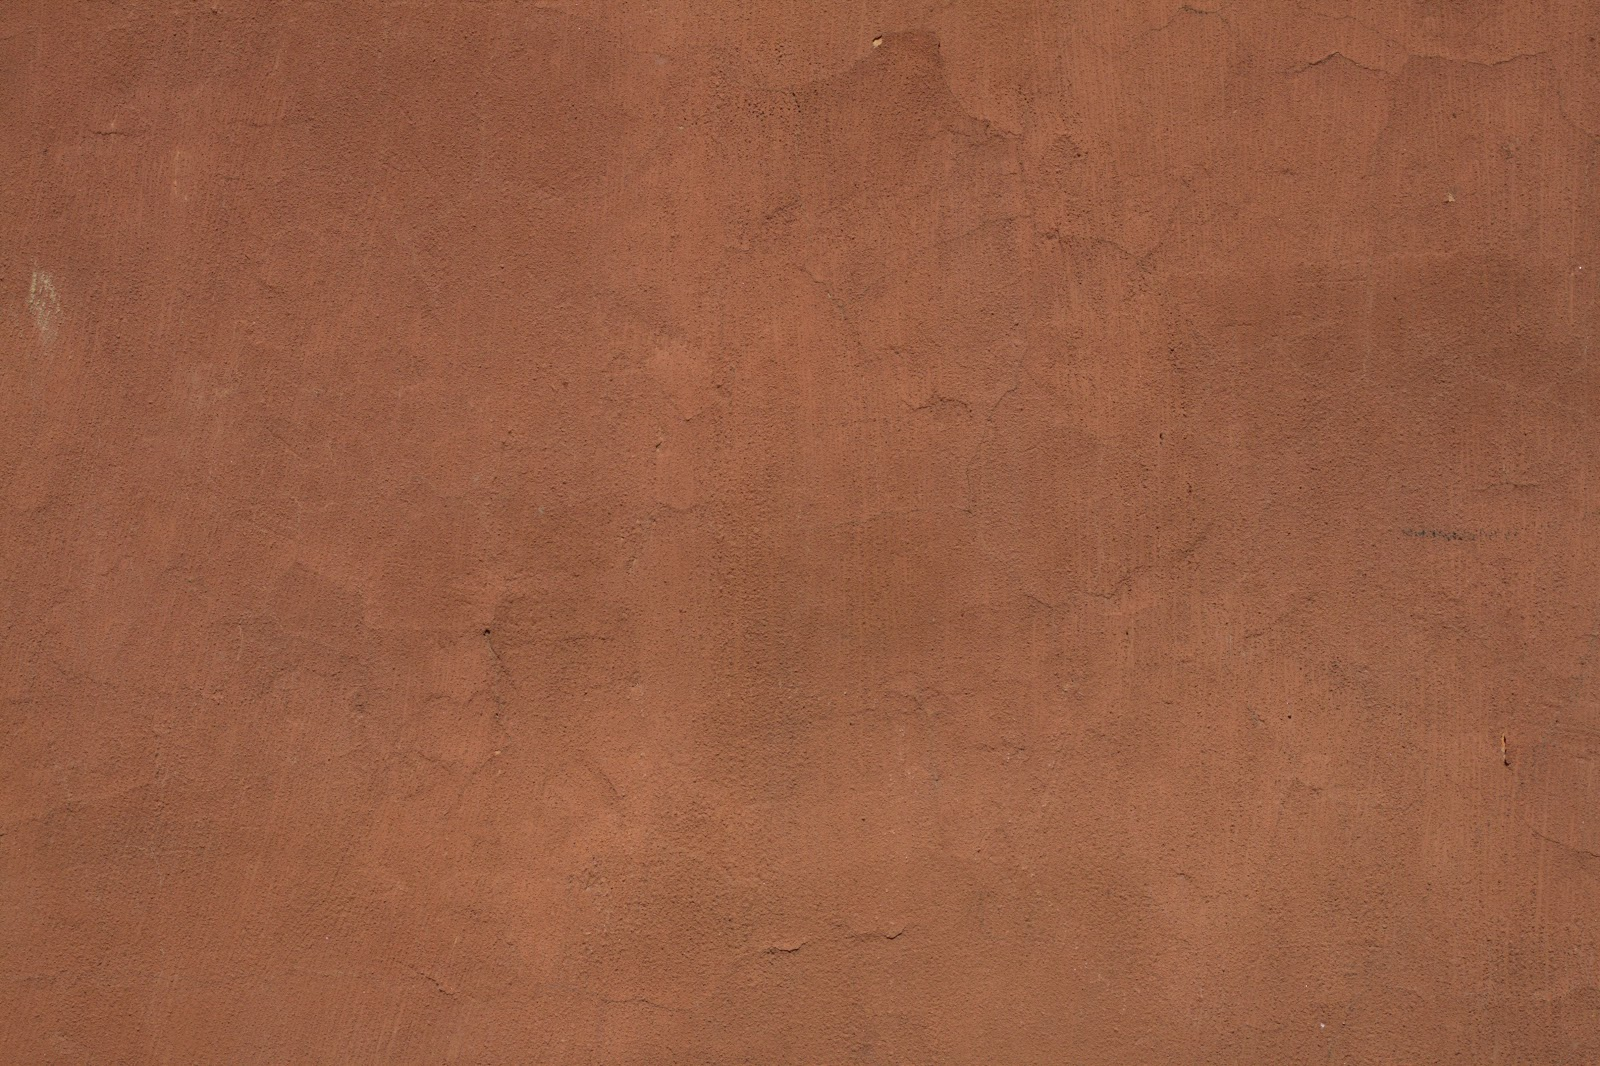 Brown stucco plaster wall paper texture 4